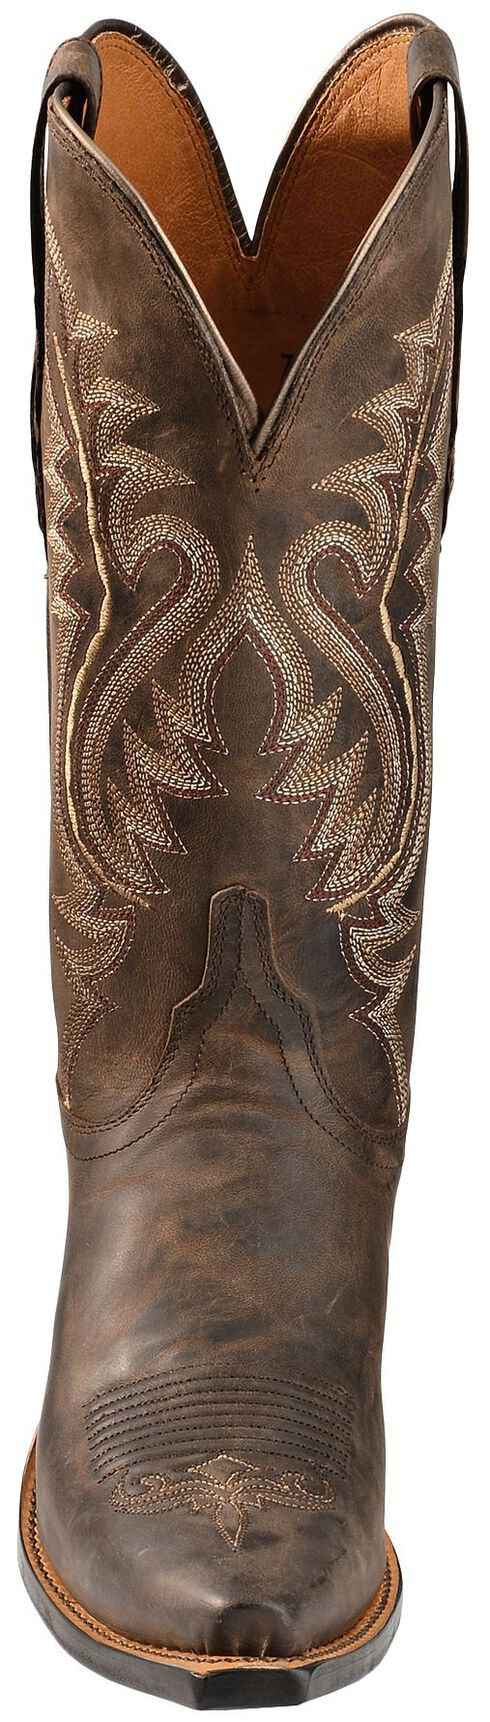 Lucchese Handcrafted 1883 Madras Goat Cowgirl Boots - Snip Toe, Chocolate, hi-res